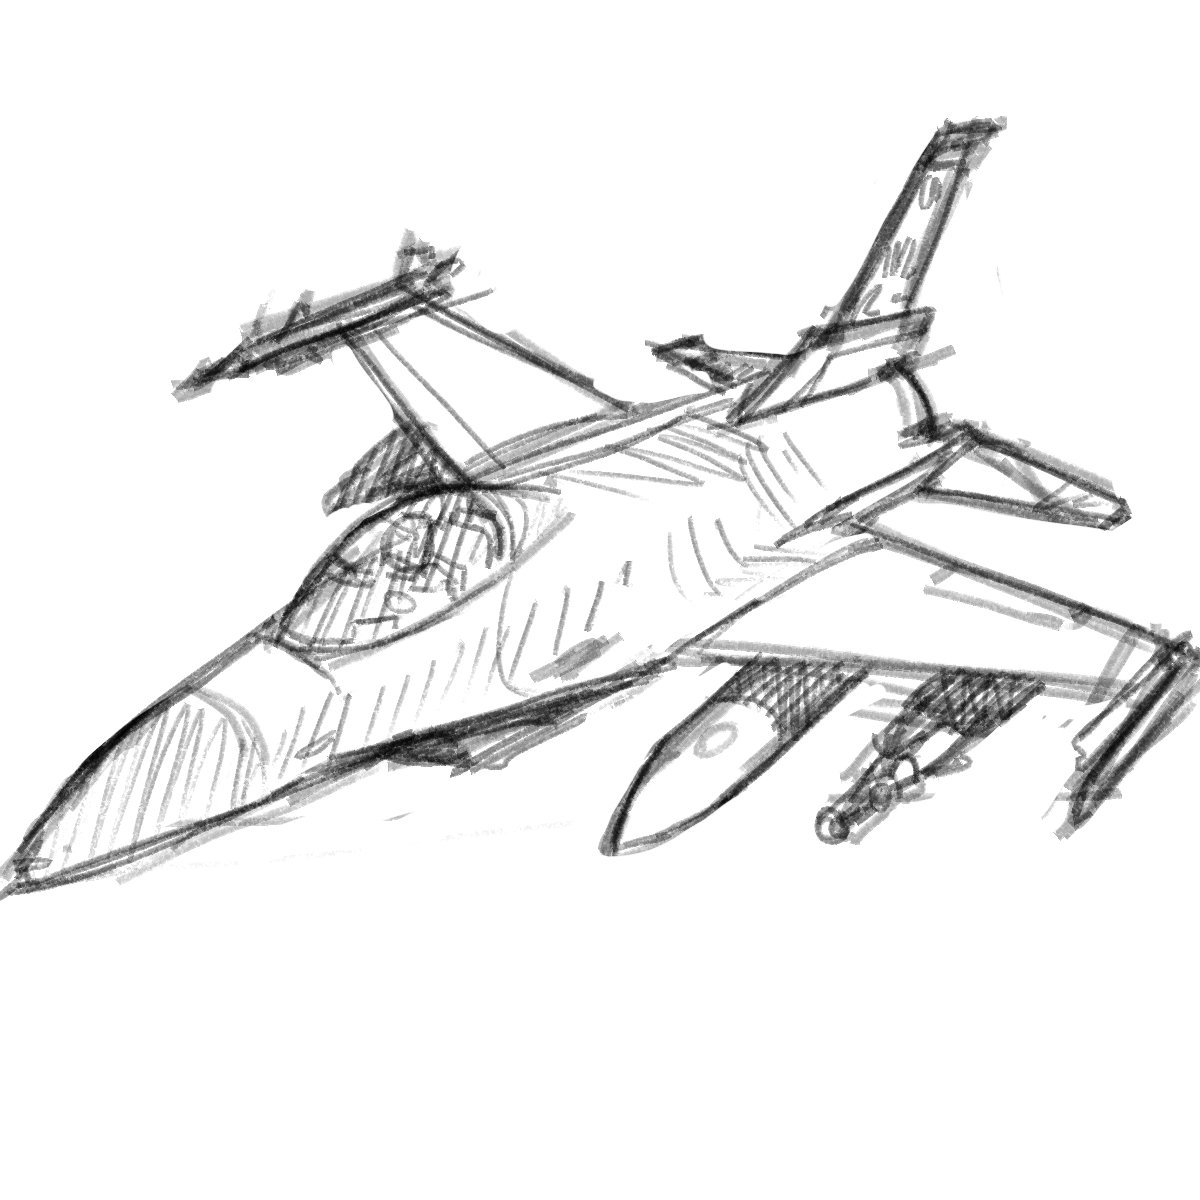 1200x1200 Jib On Twitter Drawing Fighter Jets Makes Me Feel 10.